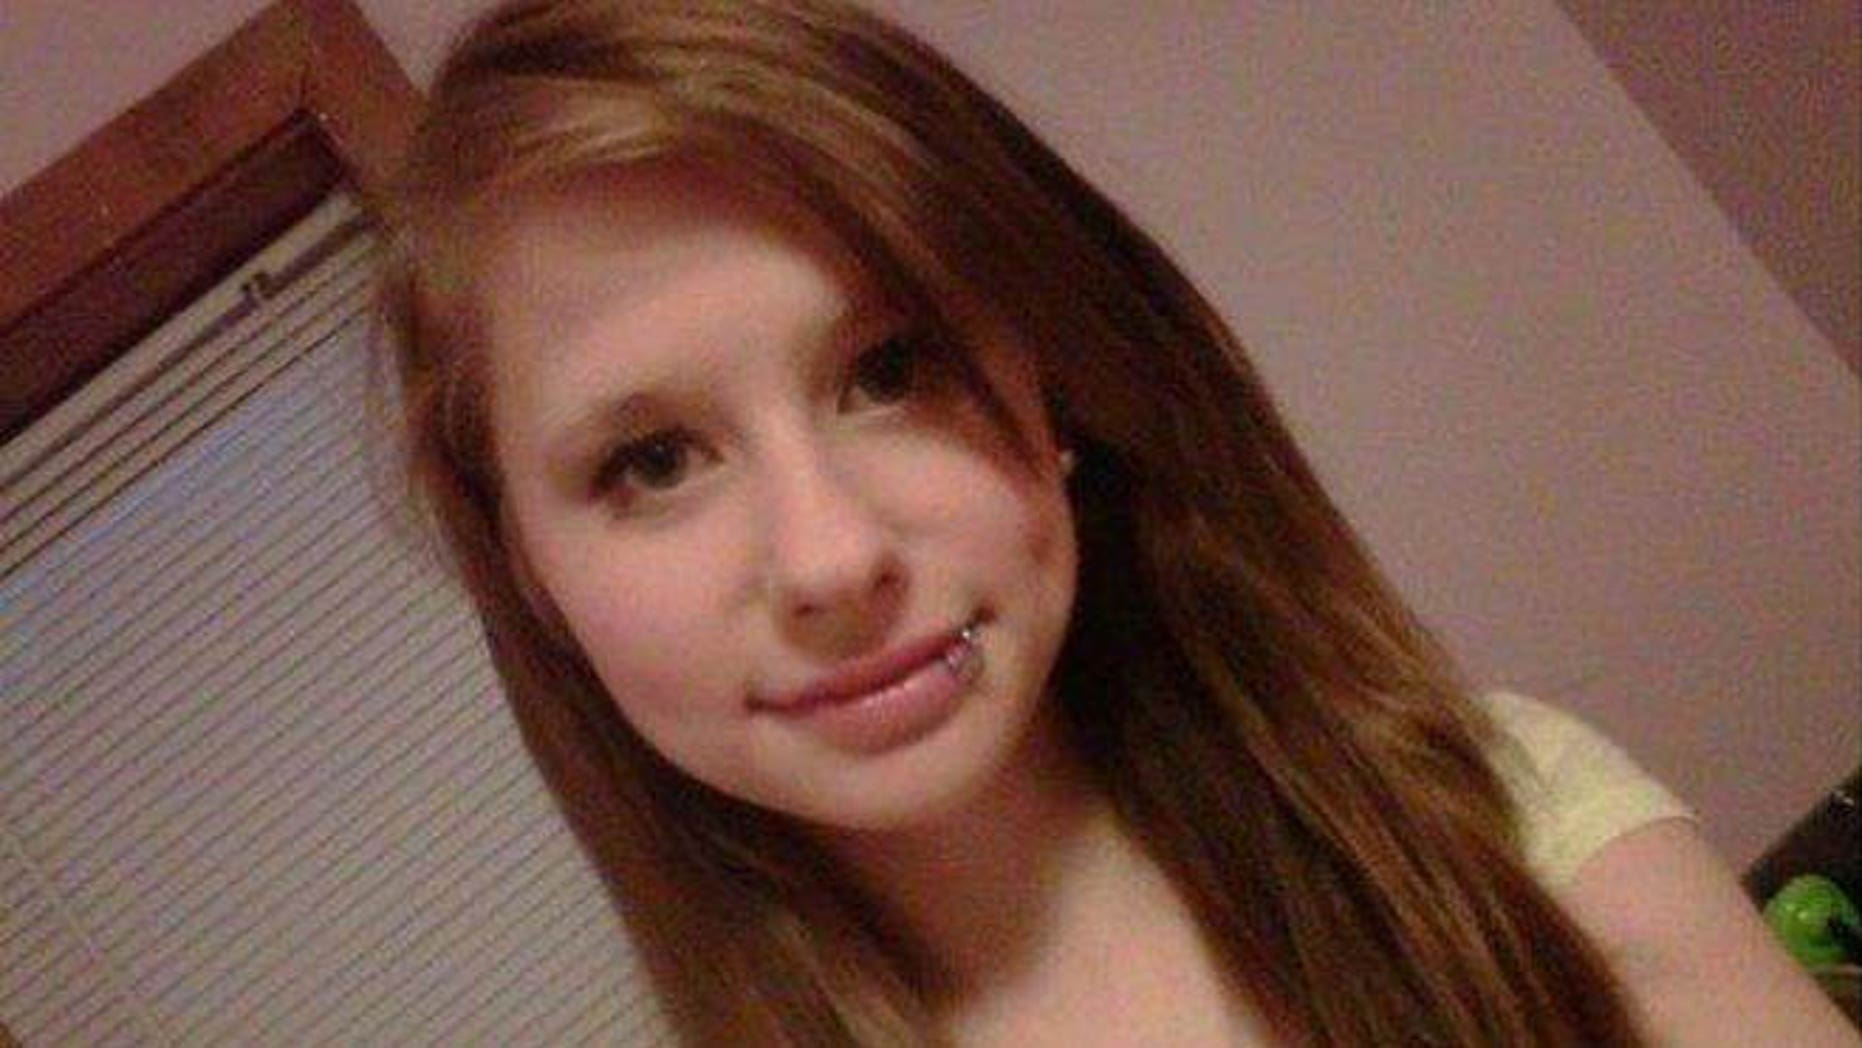 This undated photo provided by the Penobscot County Sheriffs Department shows Nichole Cable, a 15-year-old girl who was last seen over the weekend outside her Glenburn, Maine home. Officials said Friday that they want anyone who may have seen a black Ford Ranger pickup or similar truck near Nichole Cable's home between 8 p.m. Sunday and 2 a.m. Monday to contact police.